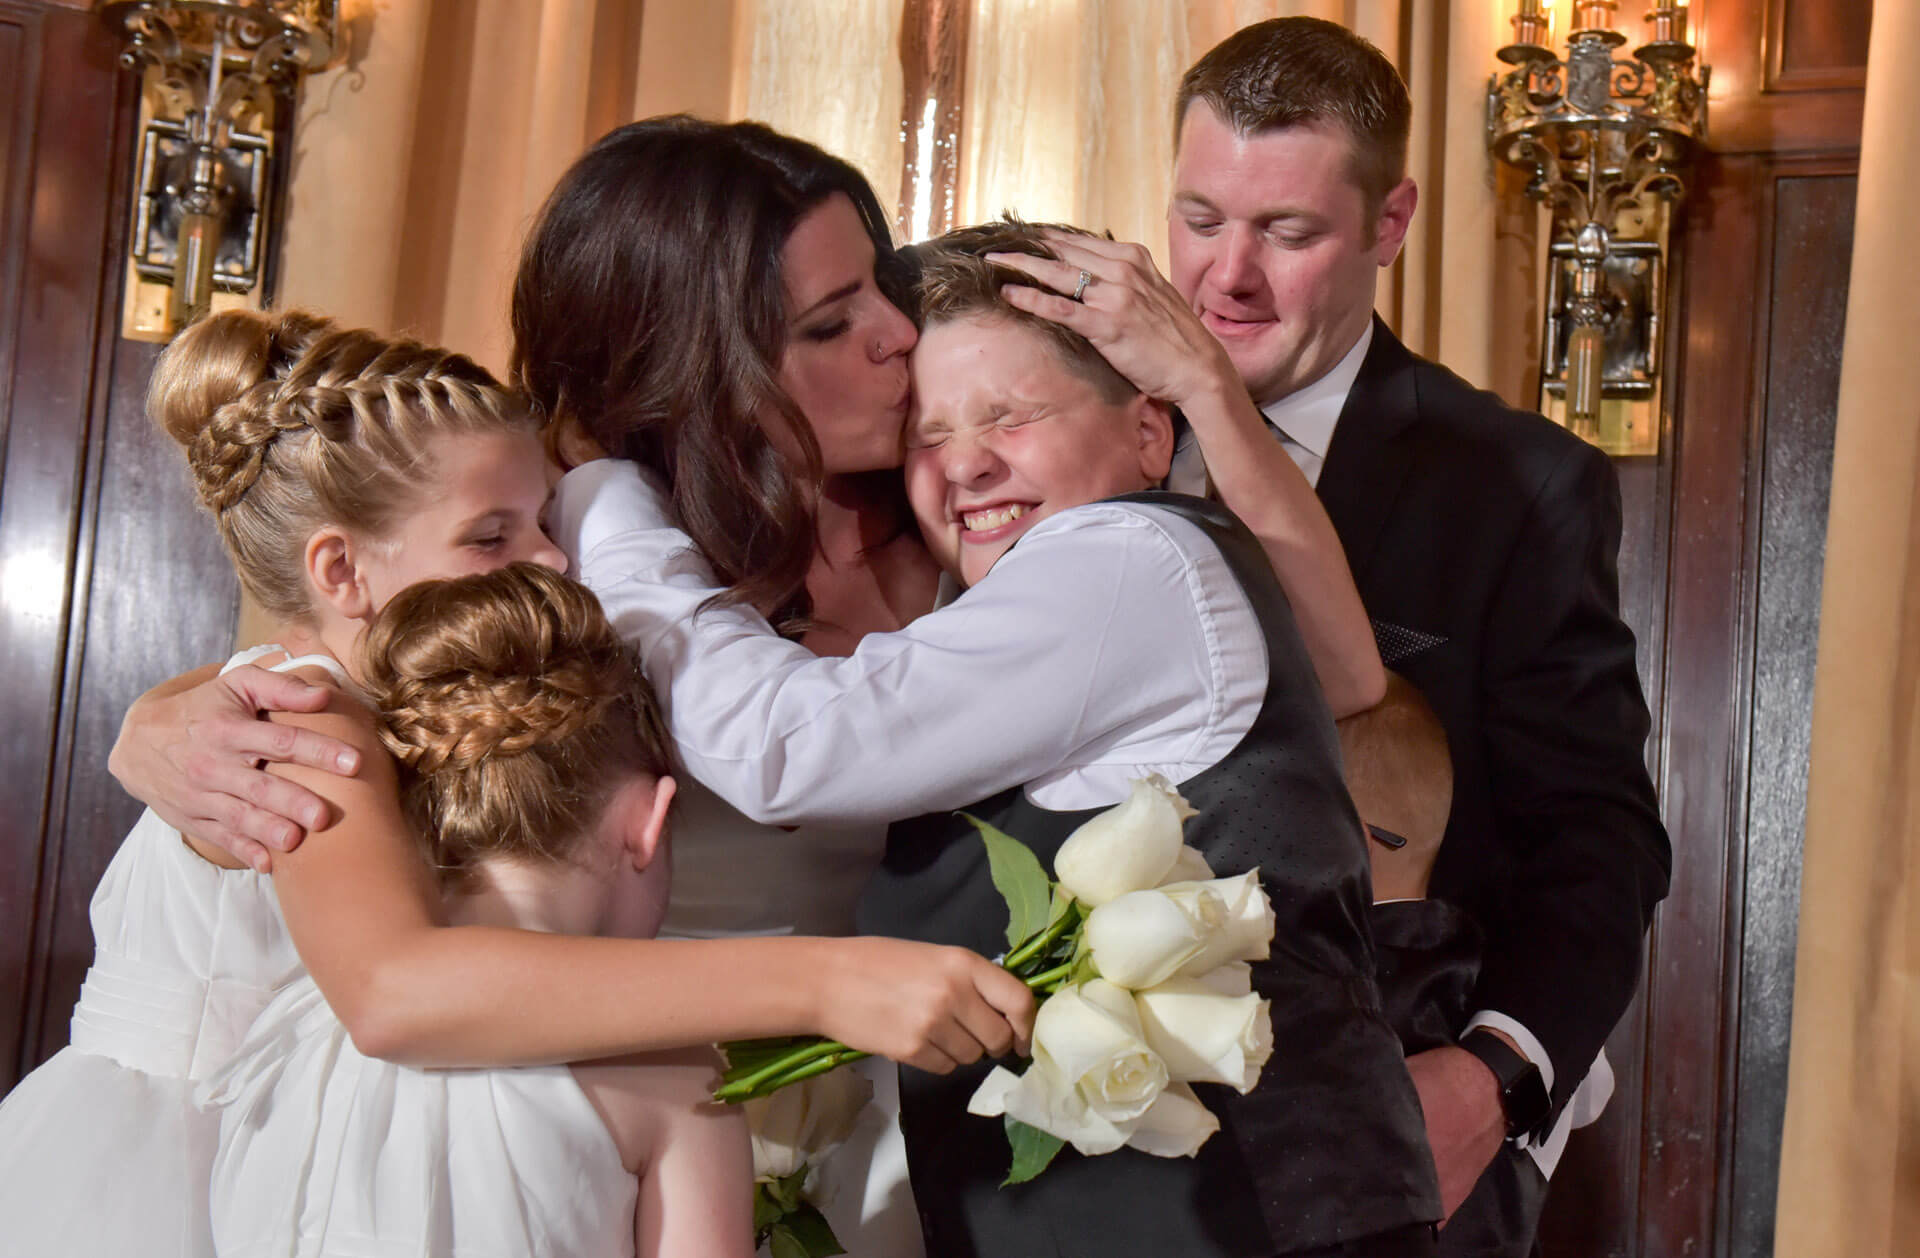 Documentary wedding photo of a mother kissing her new blended family after their Detroit wedding.